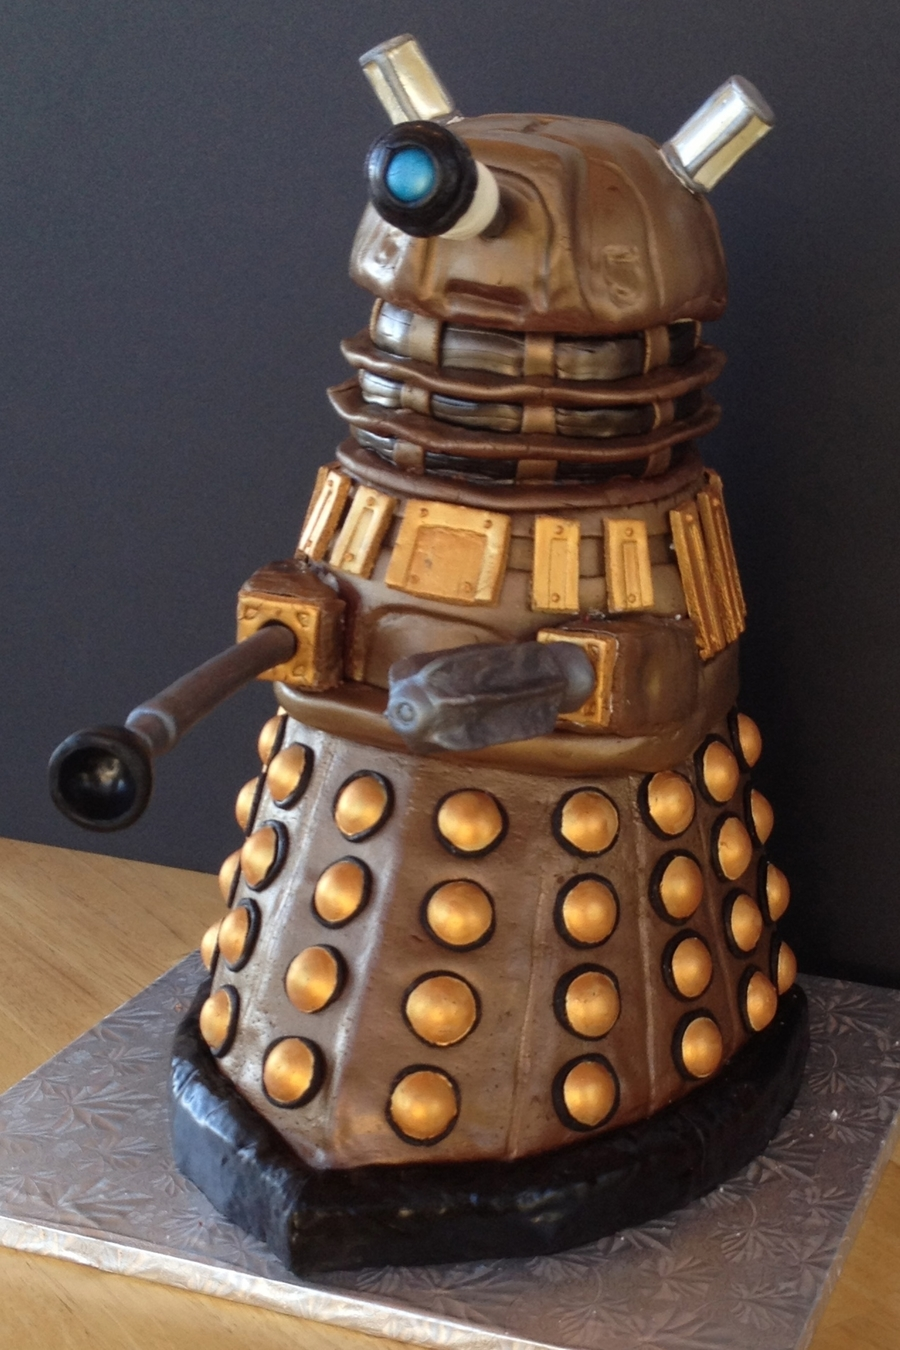 Dalek Cake - From Dr. Who on Cake Central